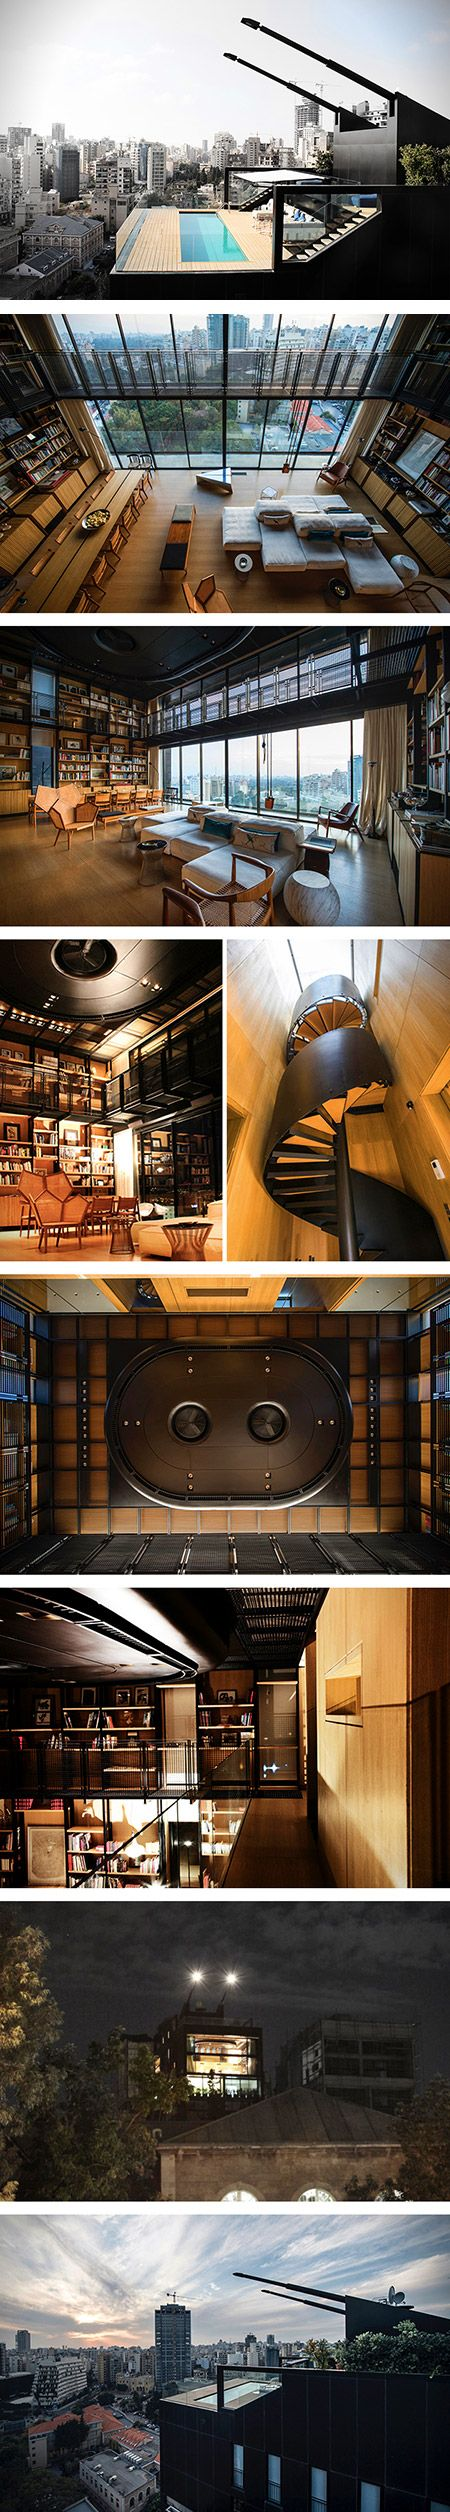 Covering badass bachelor pads on a regular basis, it takes a lot for us to get excited when it comes to apartments. Well that's exactly what architect Bernard Khoury was able to do with the amazing NBK Residence.  The famous Lebanese architect has designed a contender for the greatest bachelor pad of all time. Located in Beirut, this 3-level abode spans a massive 4,000 square foot, and includes 5 bedrooms along with 7 bathrooms.